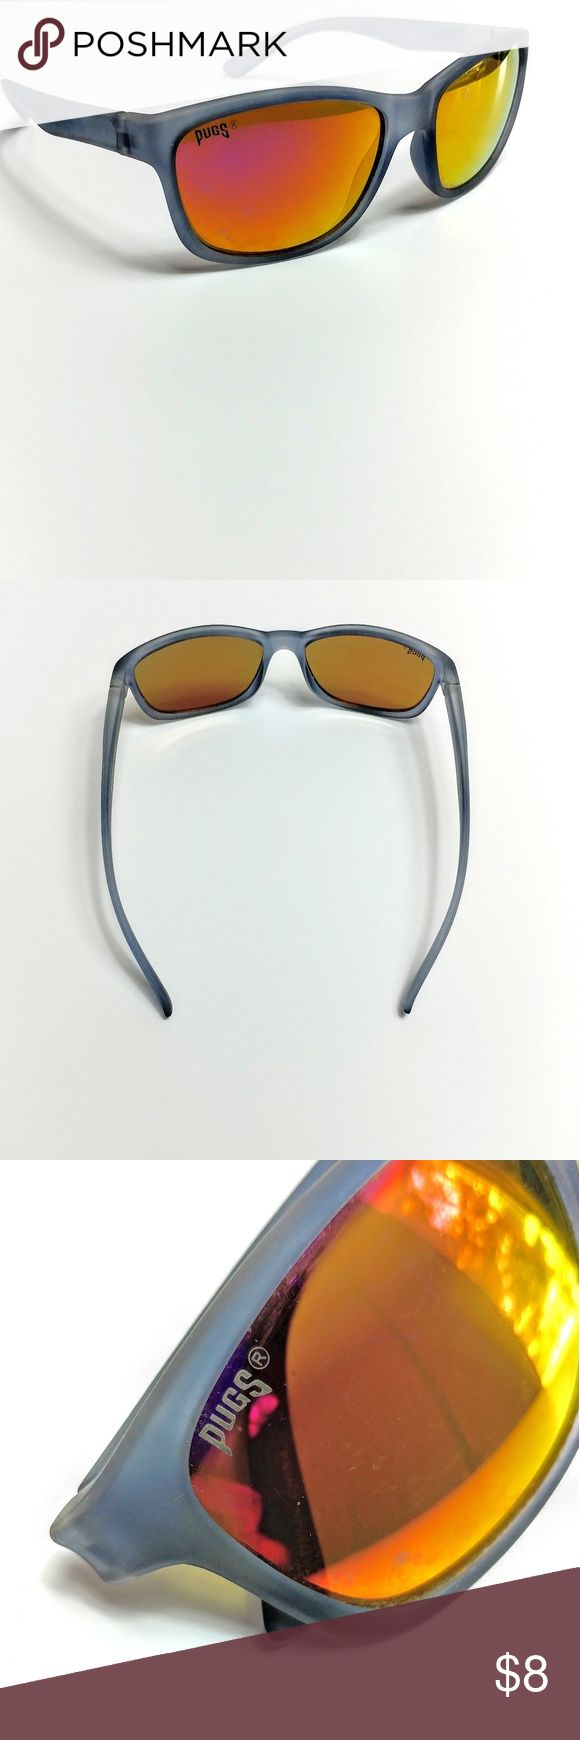 Pugs Sunglasses UV Protection  Has scuffs (pictured) Frames are a dark gray color and lenses a blend of pink and yellow Pugs Accessories Glasses